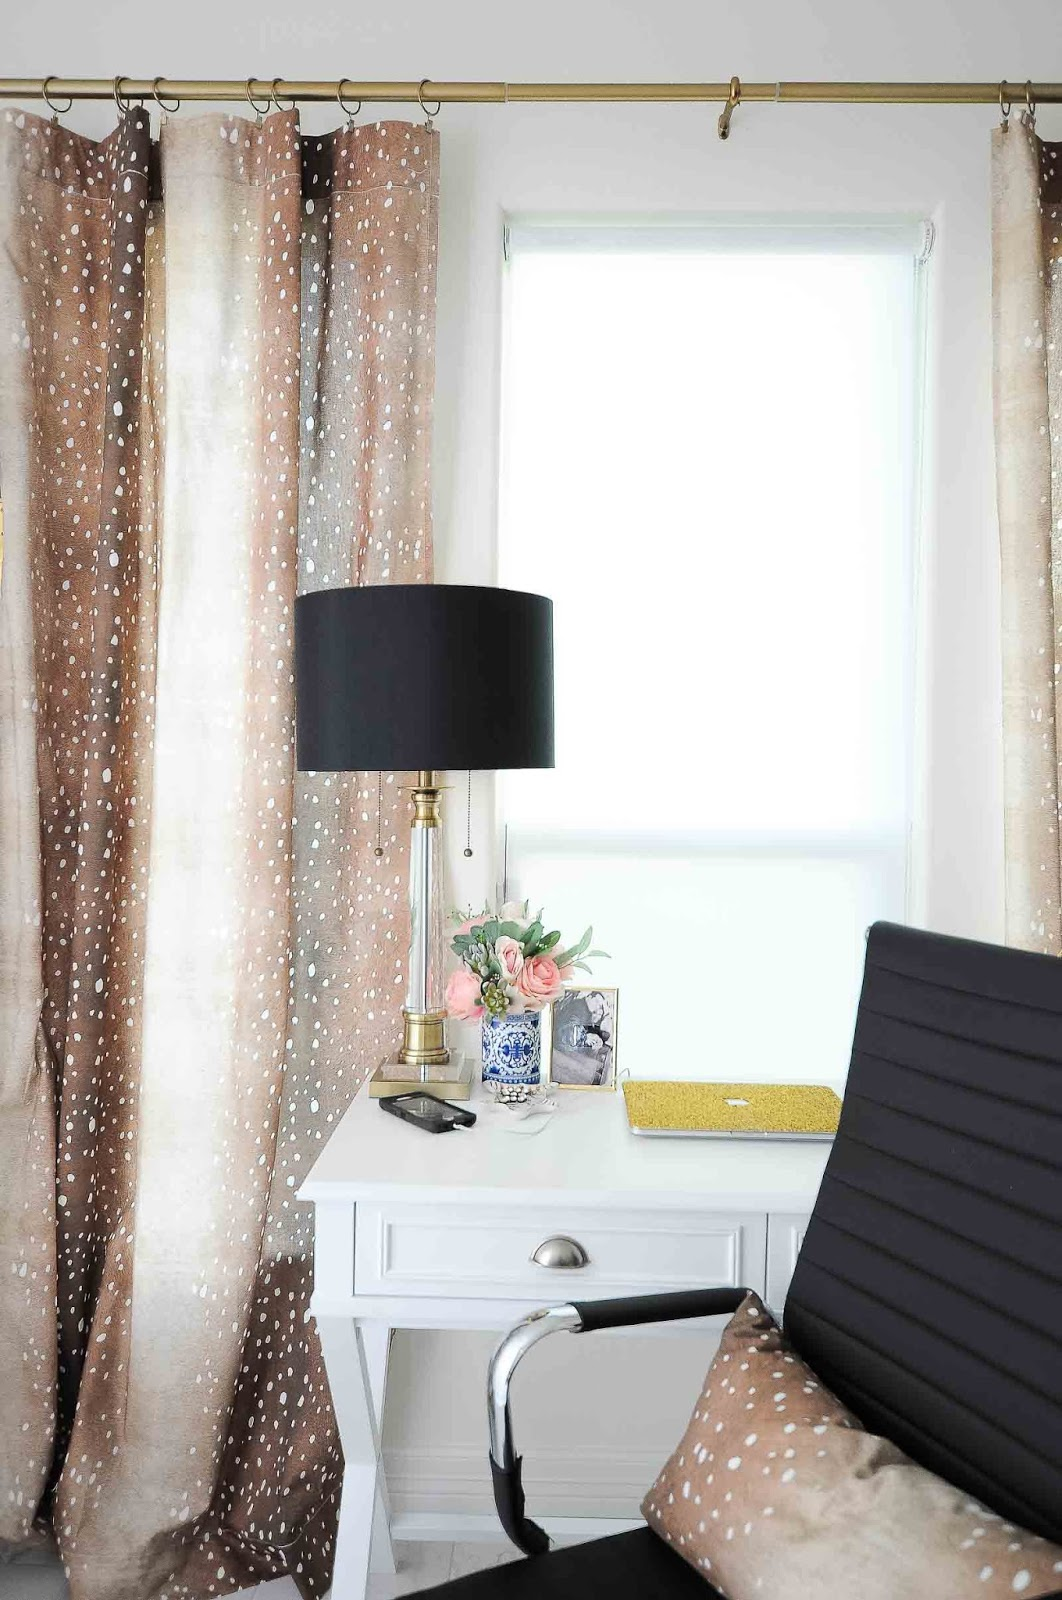 Fawn curtains (antelope curtains) look beautiful on this brass curtain rod with crystal desk lamp and feminine office home decor.